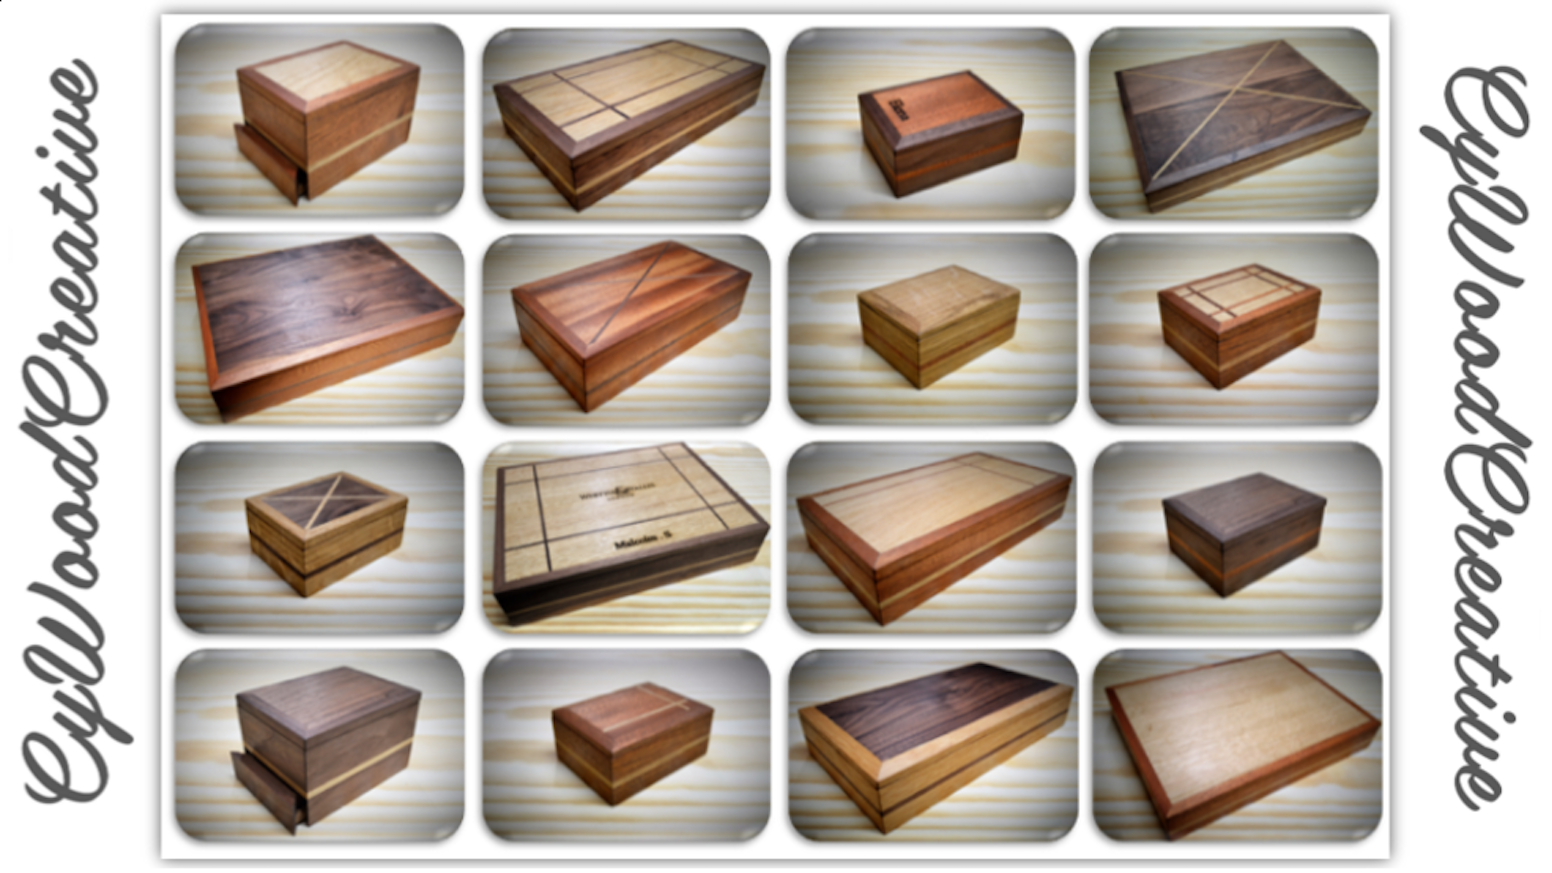 CyWoodCreation Custom Wooden Boxes With Hidden Compartment